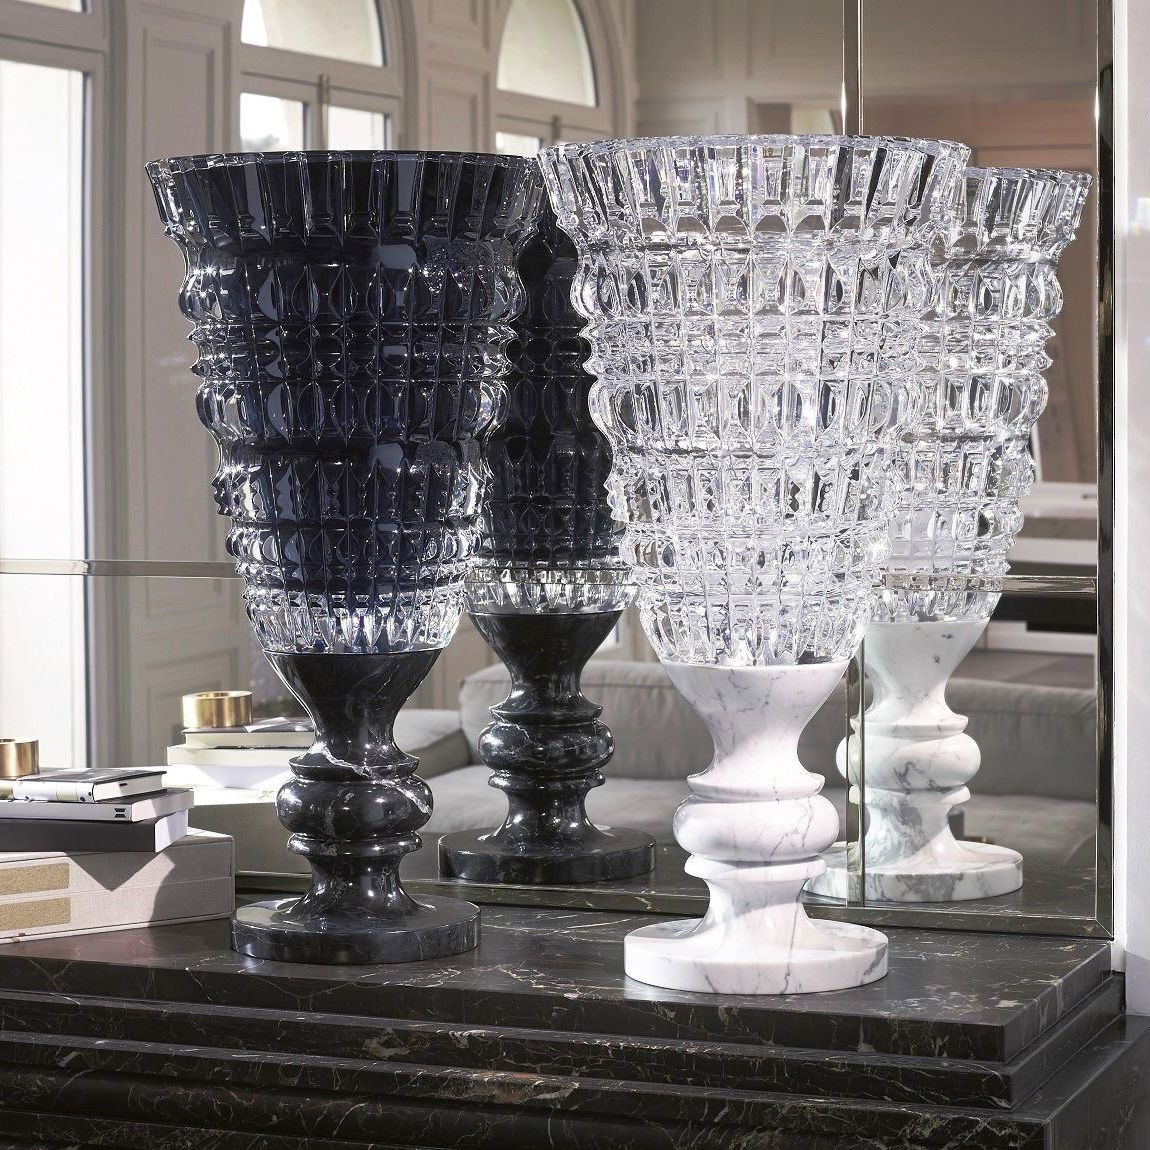 baccarat tornado crystal vase of baroque style vase crystal marble by marcel wanders new for baroque style vase crystal marble by marcel wanders new antique